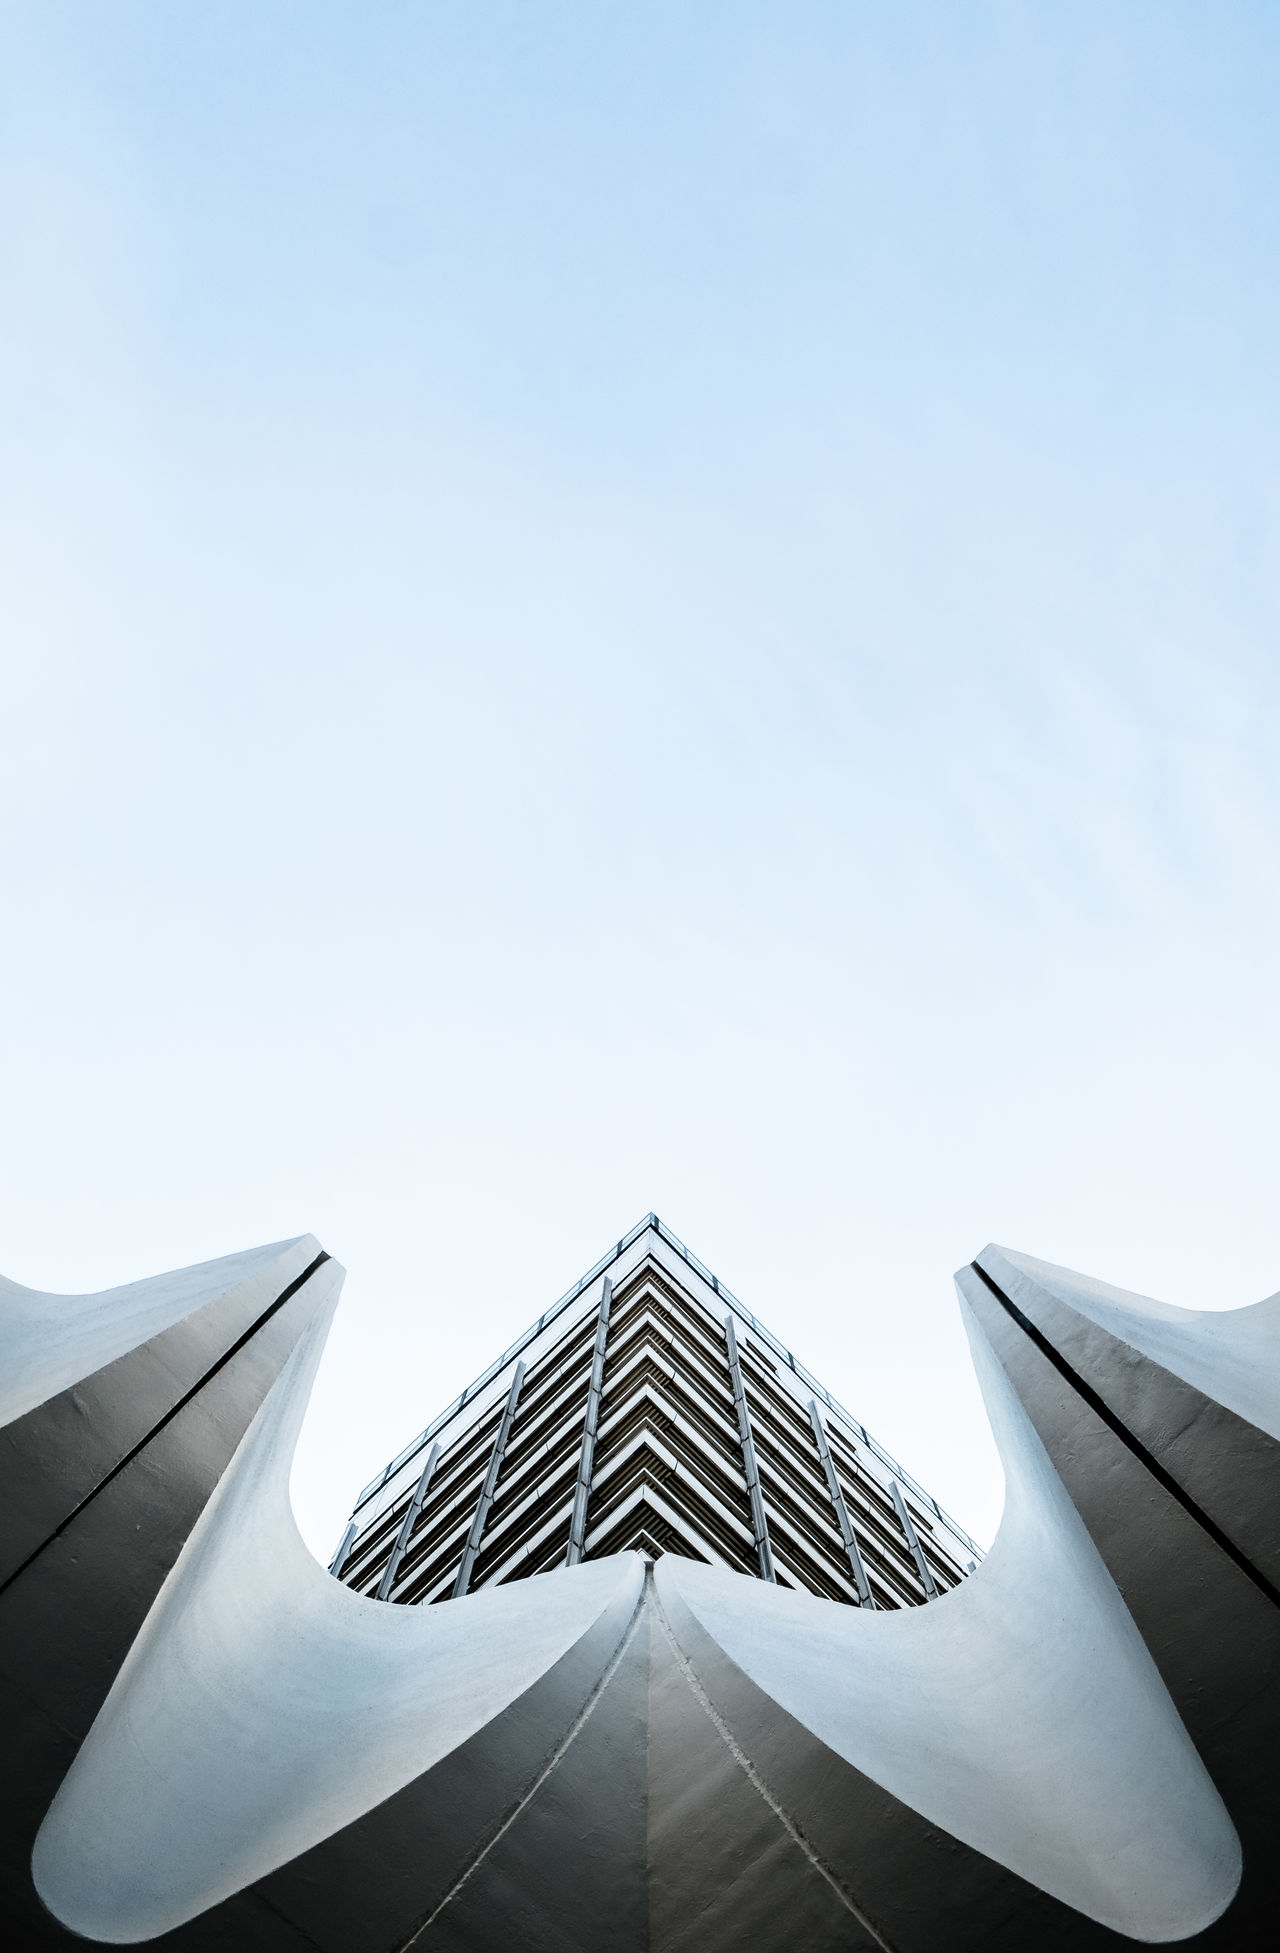 Lookingupforadifferentview Abstract Architectural Detail Architecture Architecture_collection Architecturelovers Building Exterior Buildings & Sky Built Structure Cityexplorer Design Geometric Shapes Geometry Lookingup Low Angle View Minimal Minimalism Minimalist Minimalobsession Pattern, Texture, Shape And Form Showcase March Simplicity Symmetry The Architect - 2016 EyeEm Awards Urban Geometry Urbanphotography